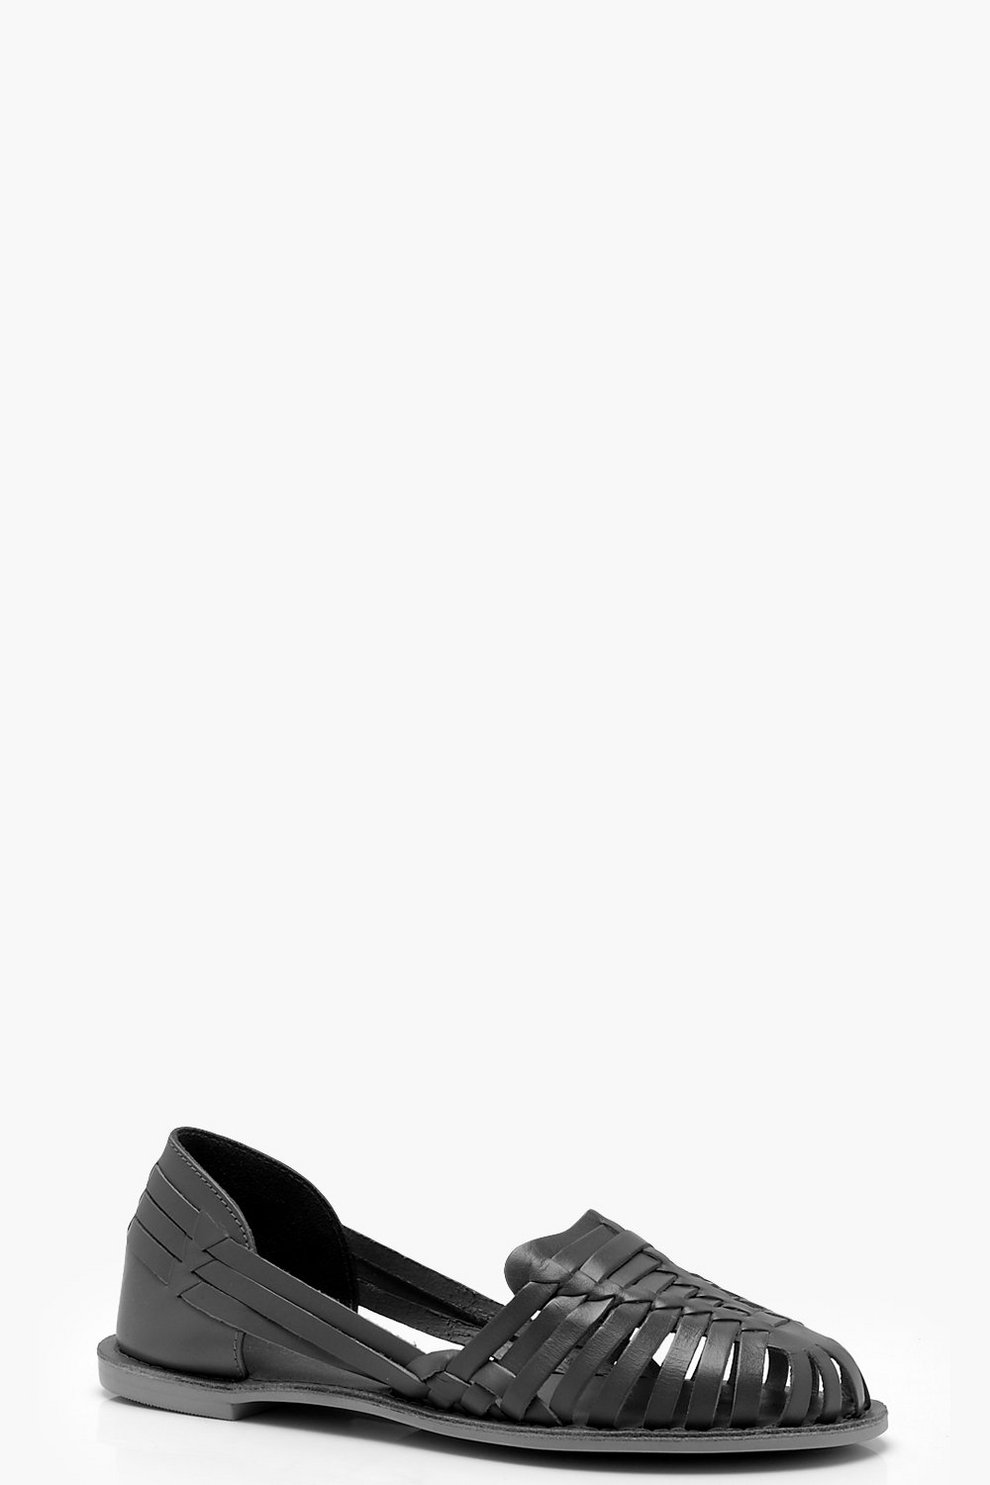 Esme Wide Fit Leather Woven Ballets by Boohoo